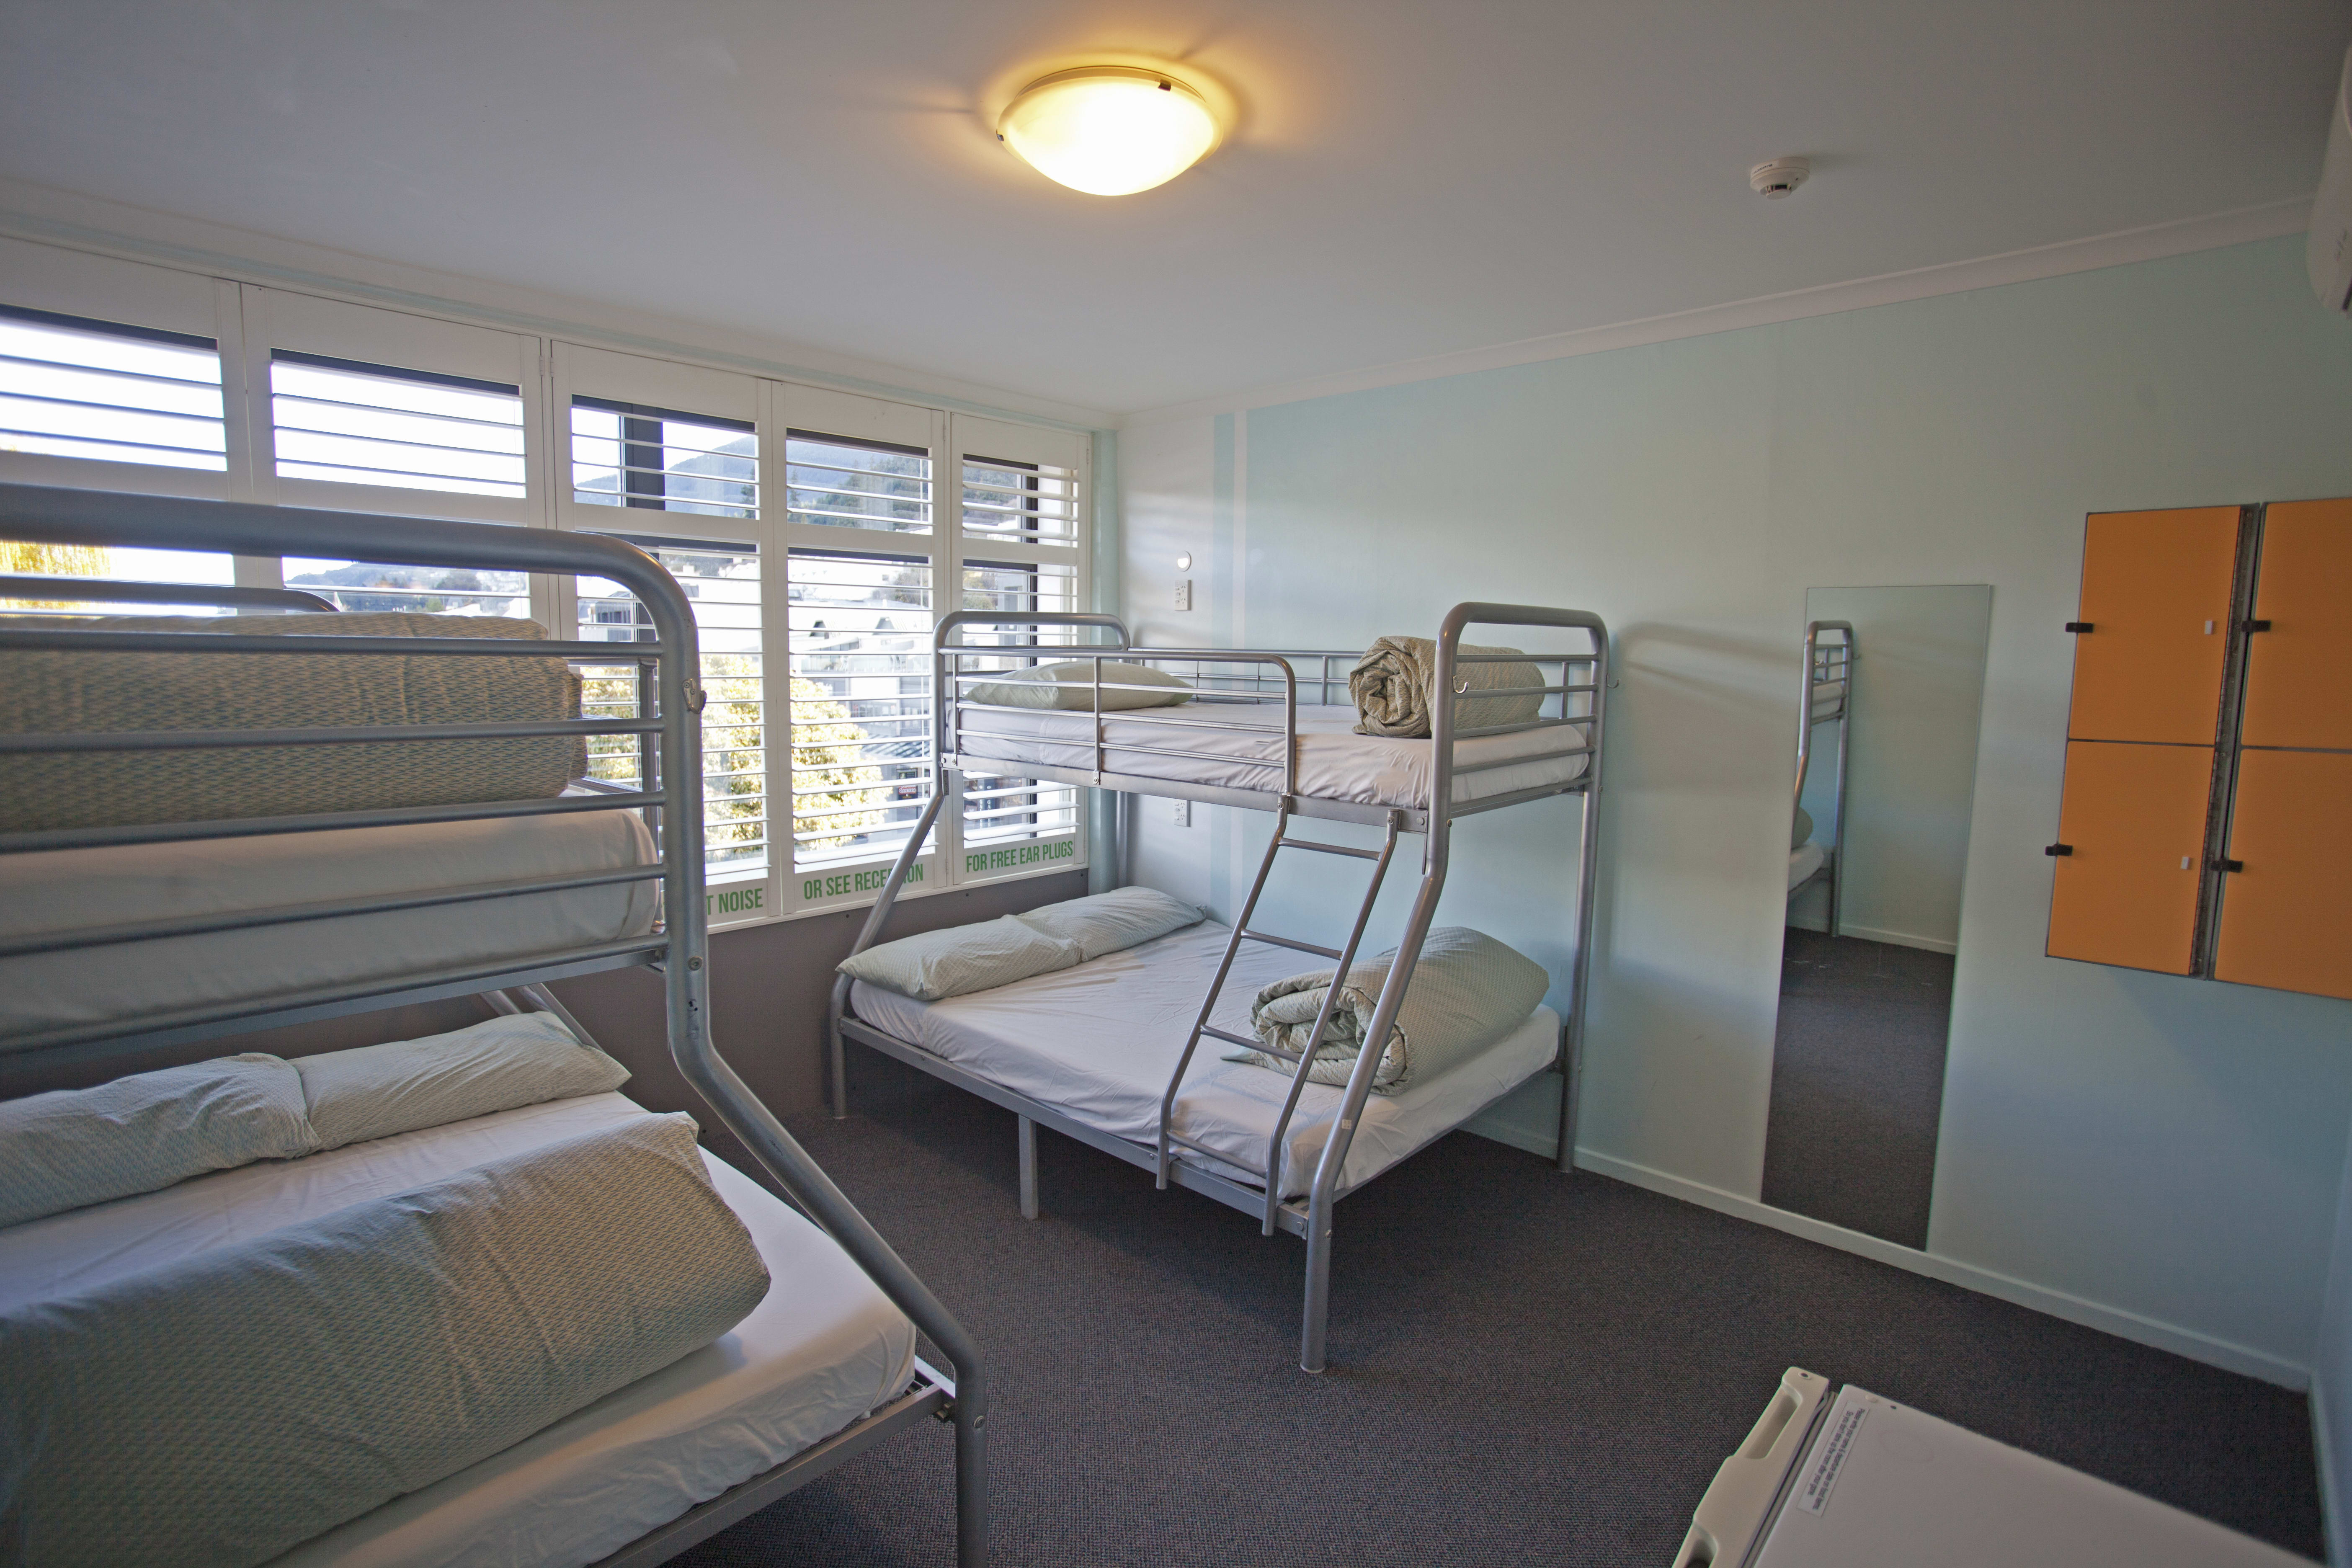 HOSTEL - Absoloot Value Accommodation